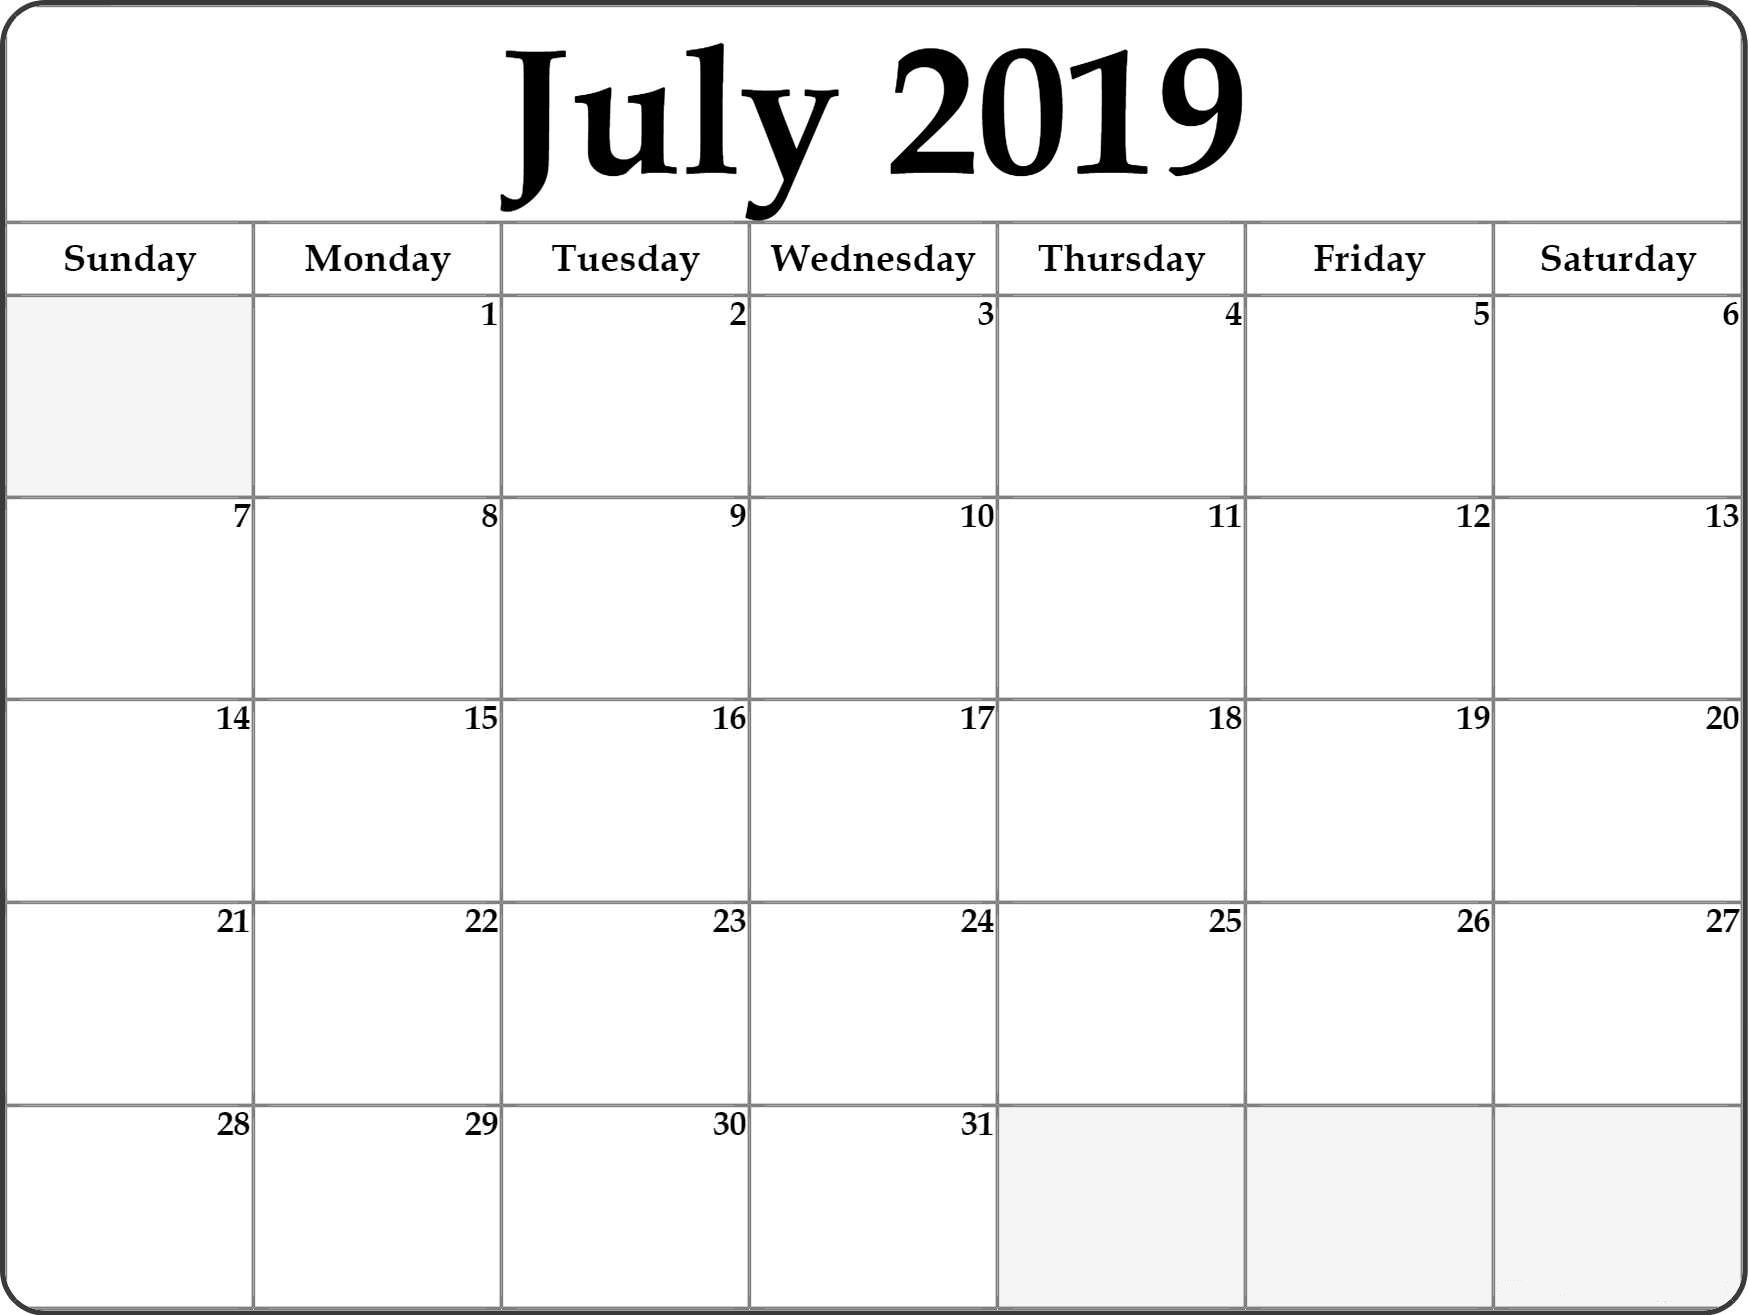 monthly calendar july 2019 template excel